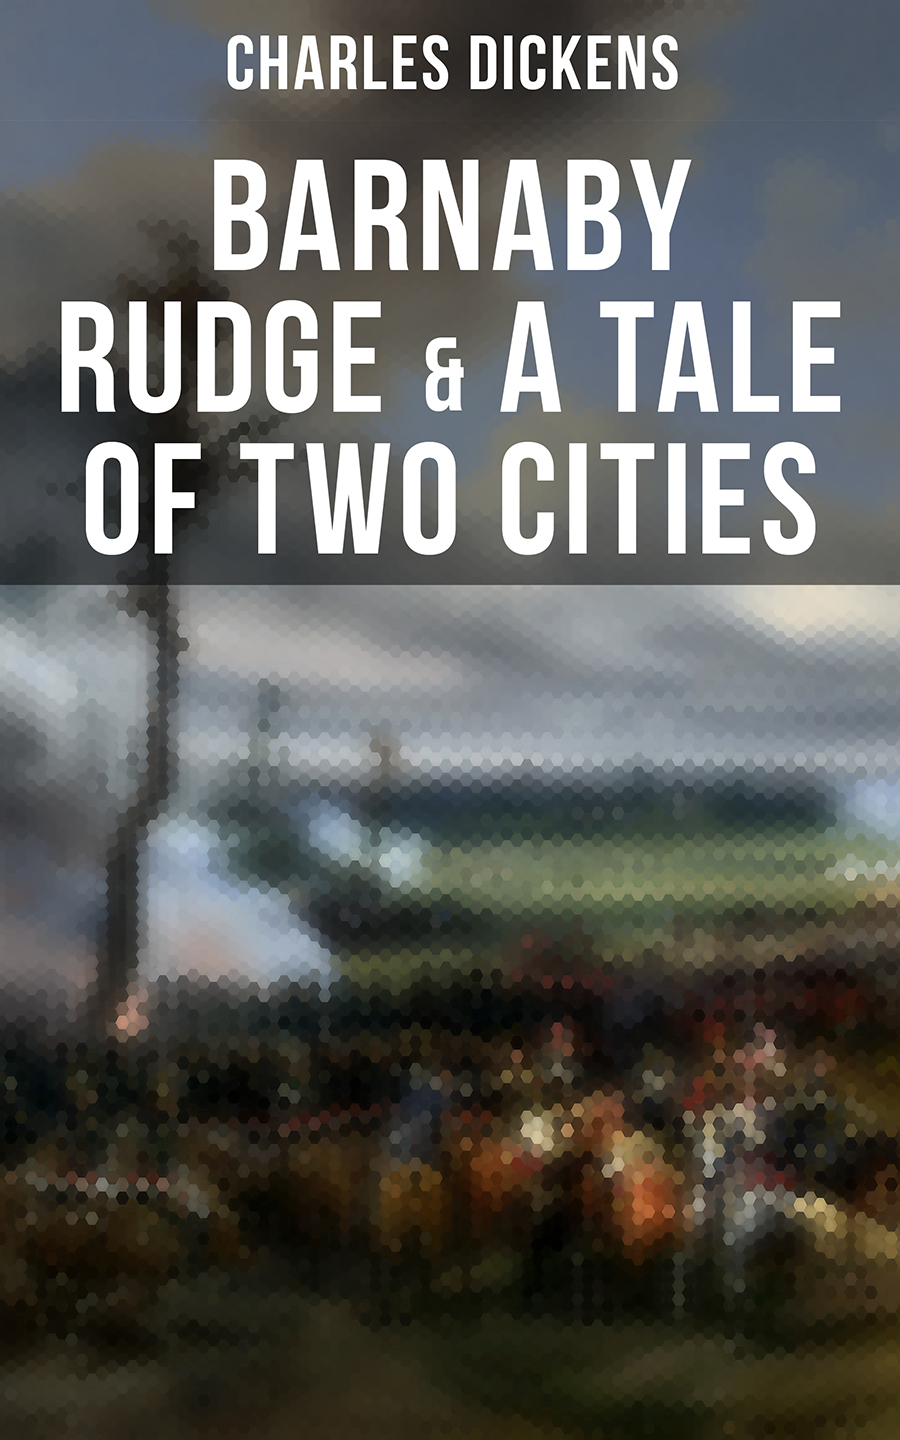 Charles Dickens Barnaby Rudge & A Tale of Two Cities charles dickens barnaby rudge cronos classics